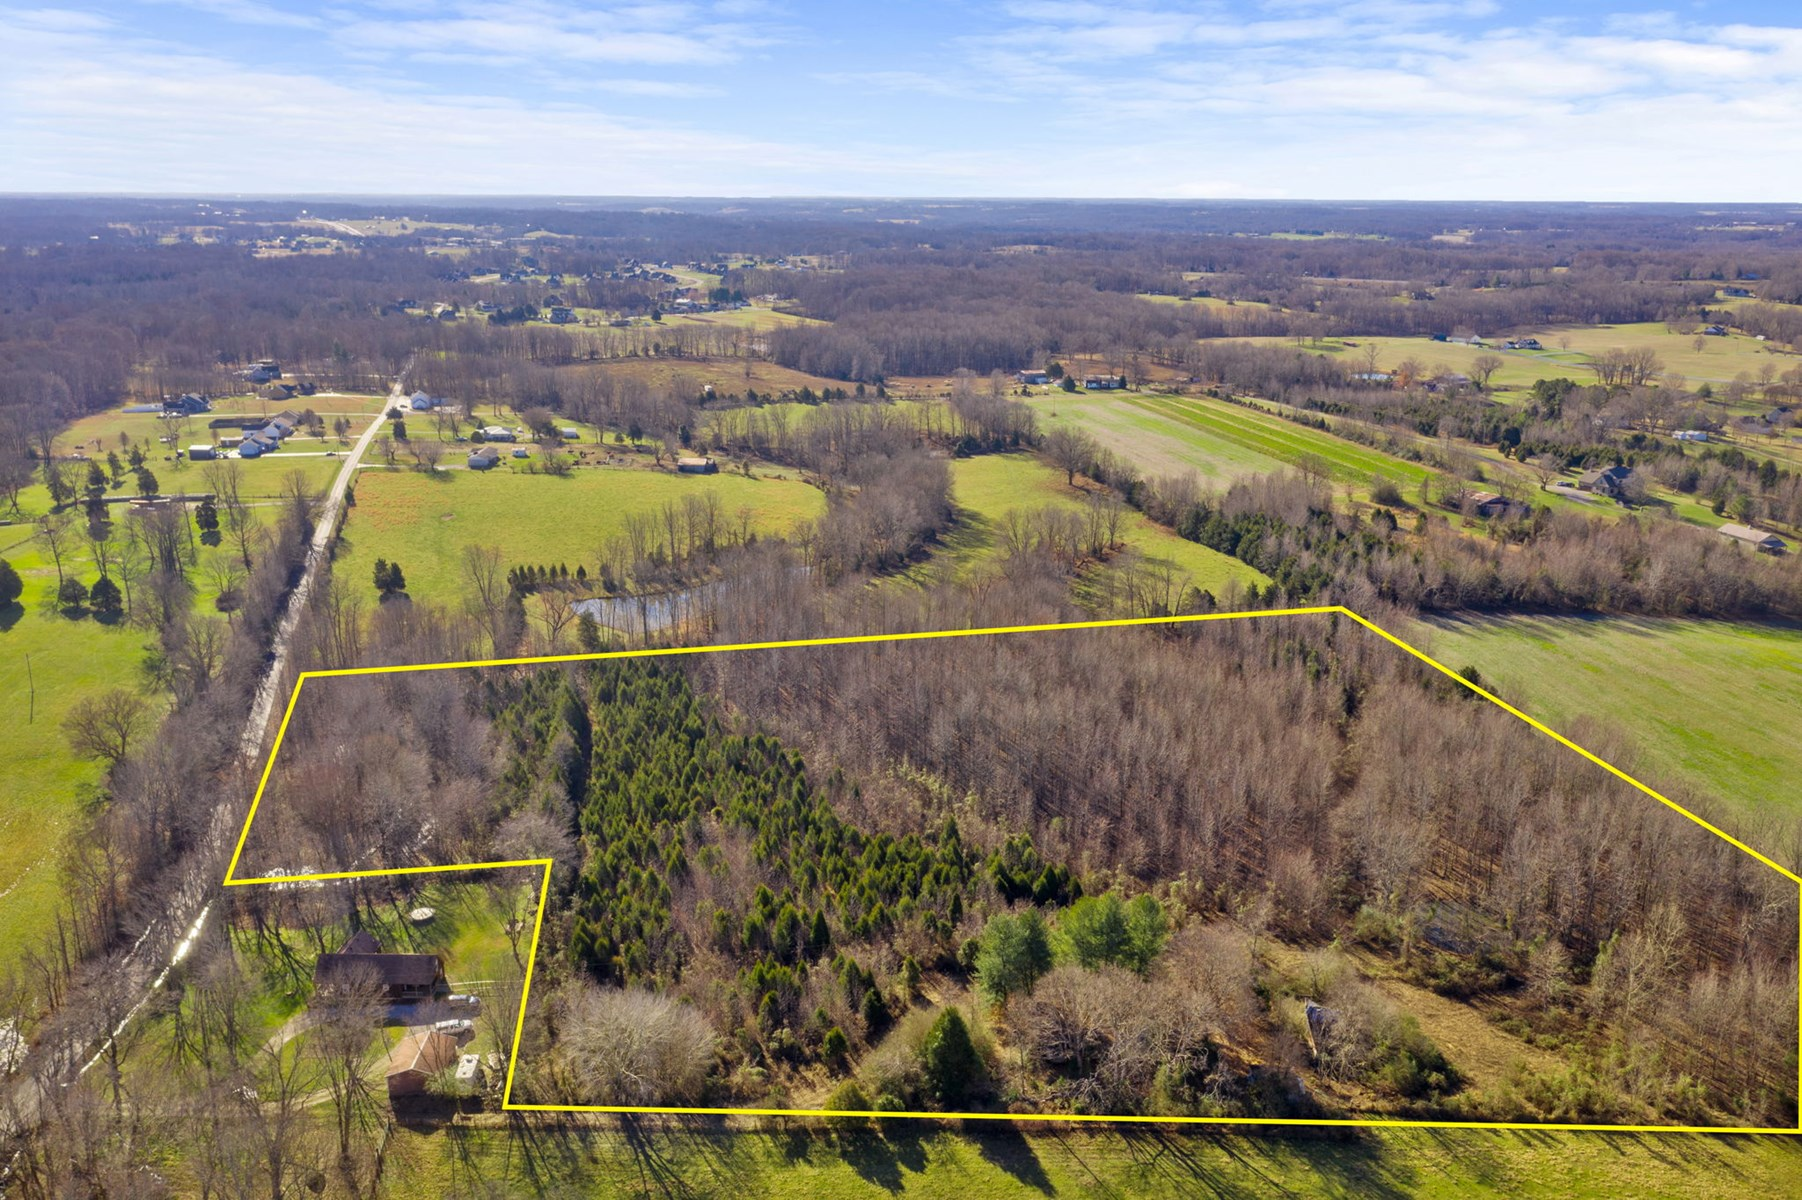 Prime 14.3 Acres of Warren County Land for sale at Auction